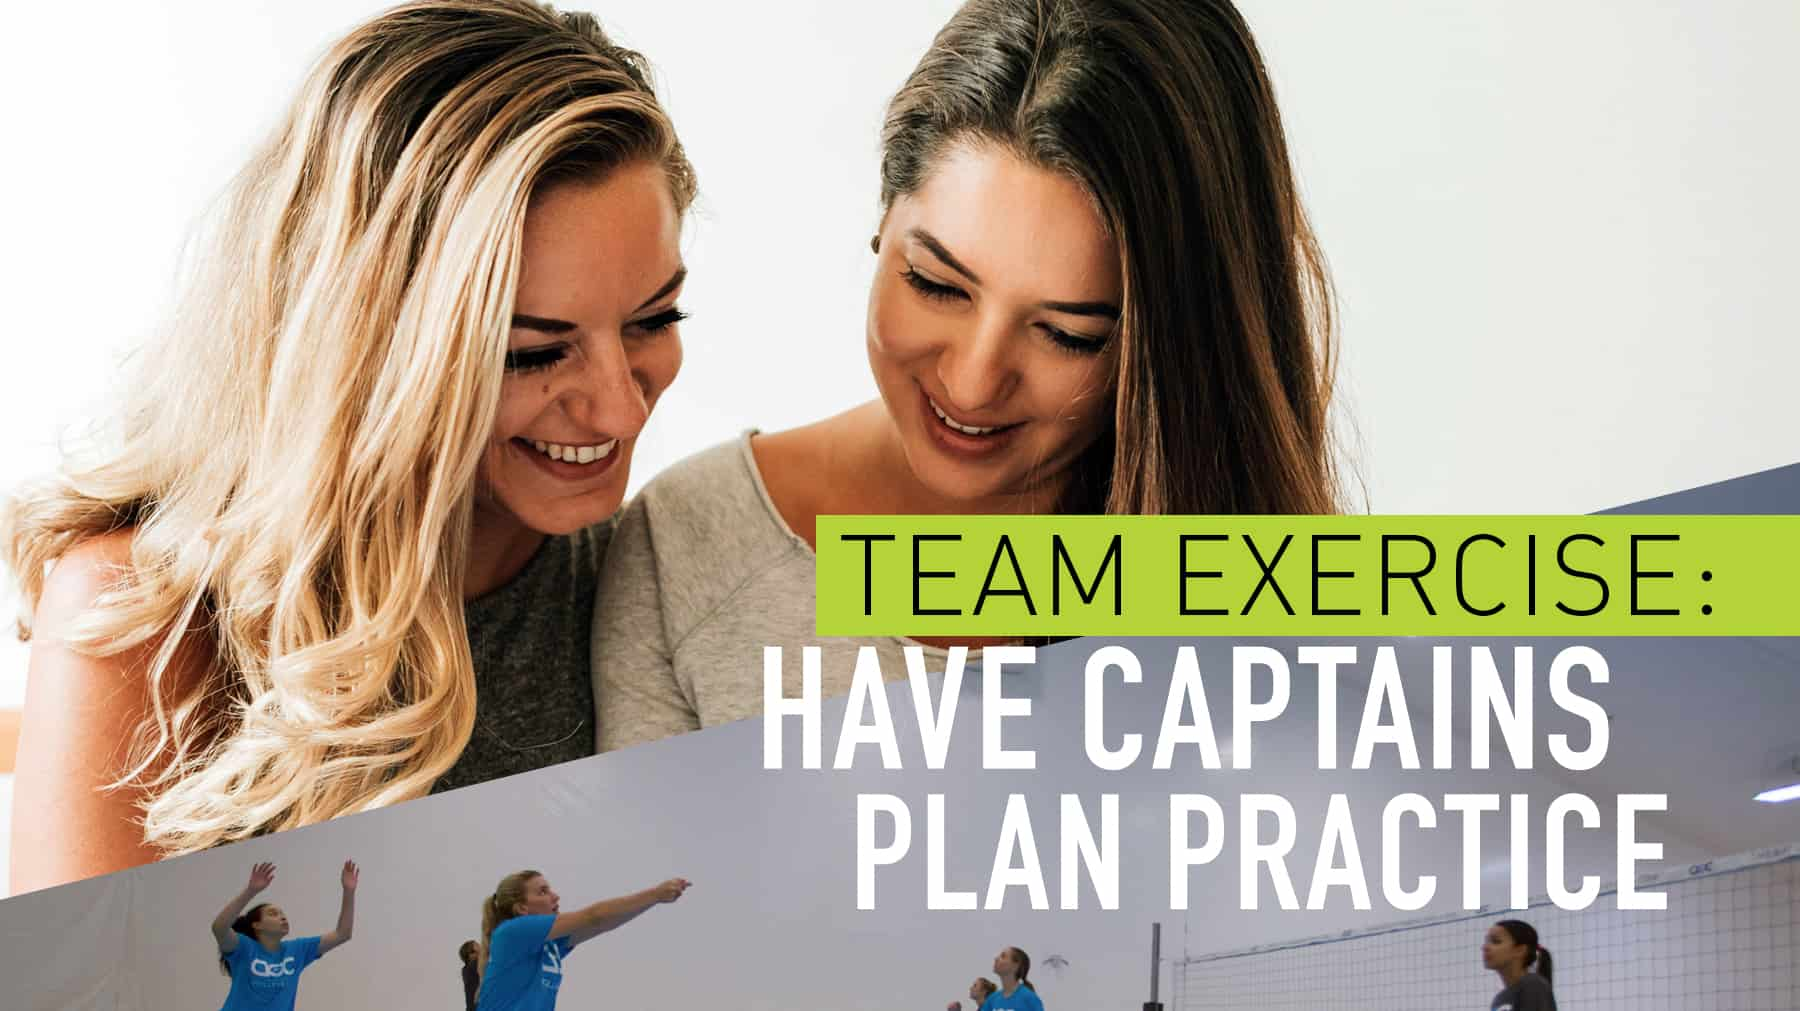 Team exercise: Have captains a plan practice